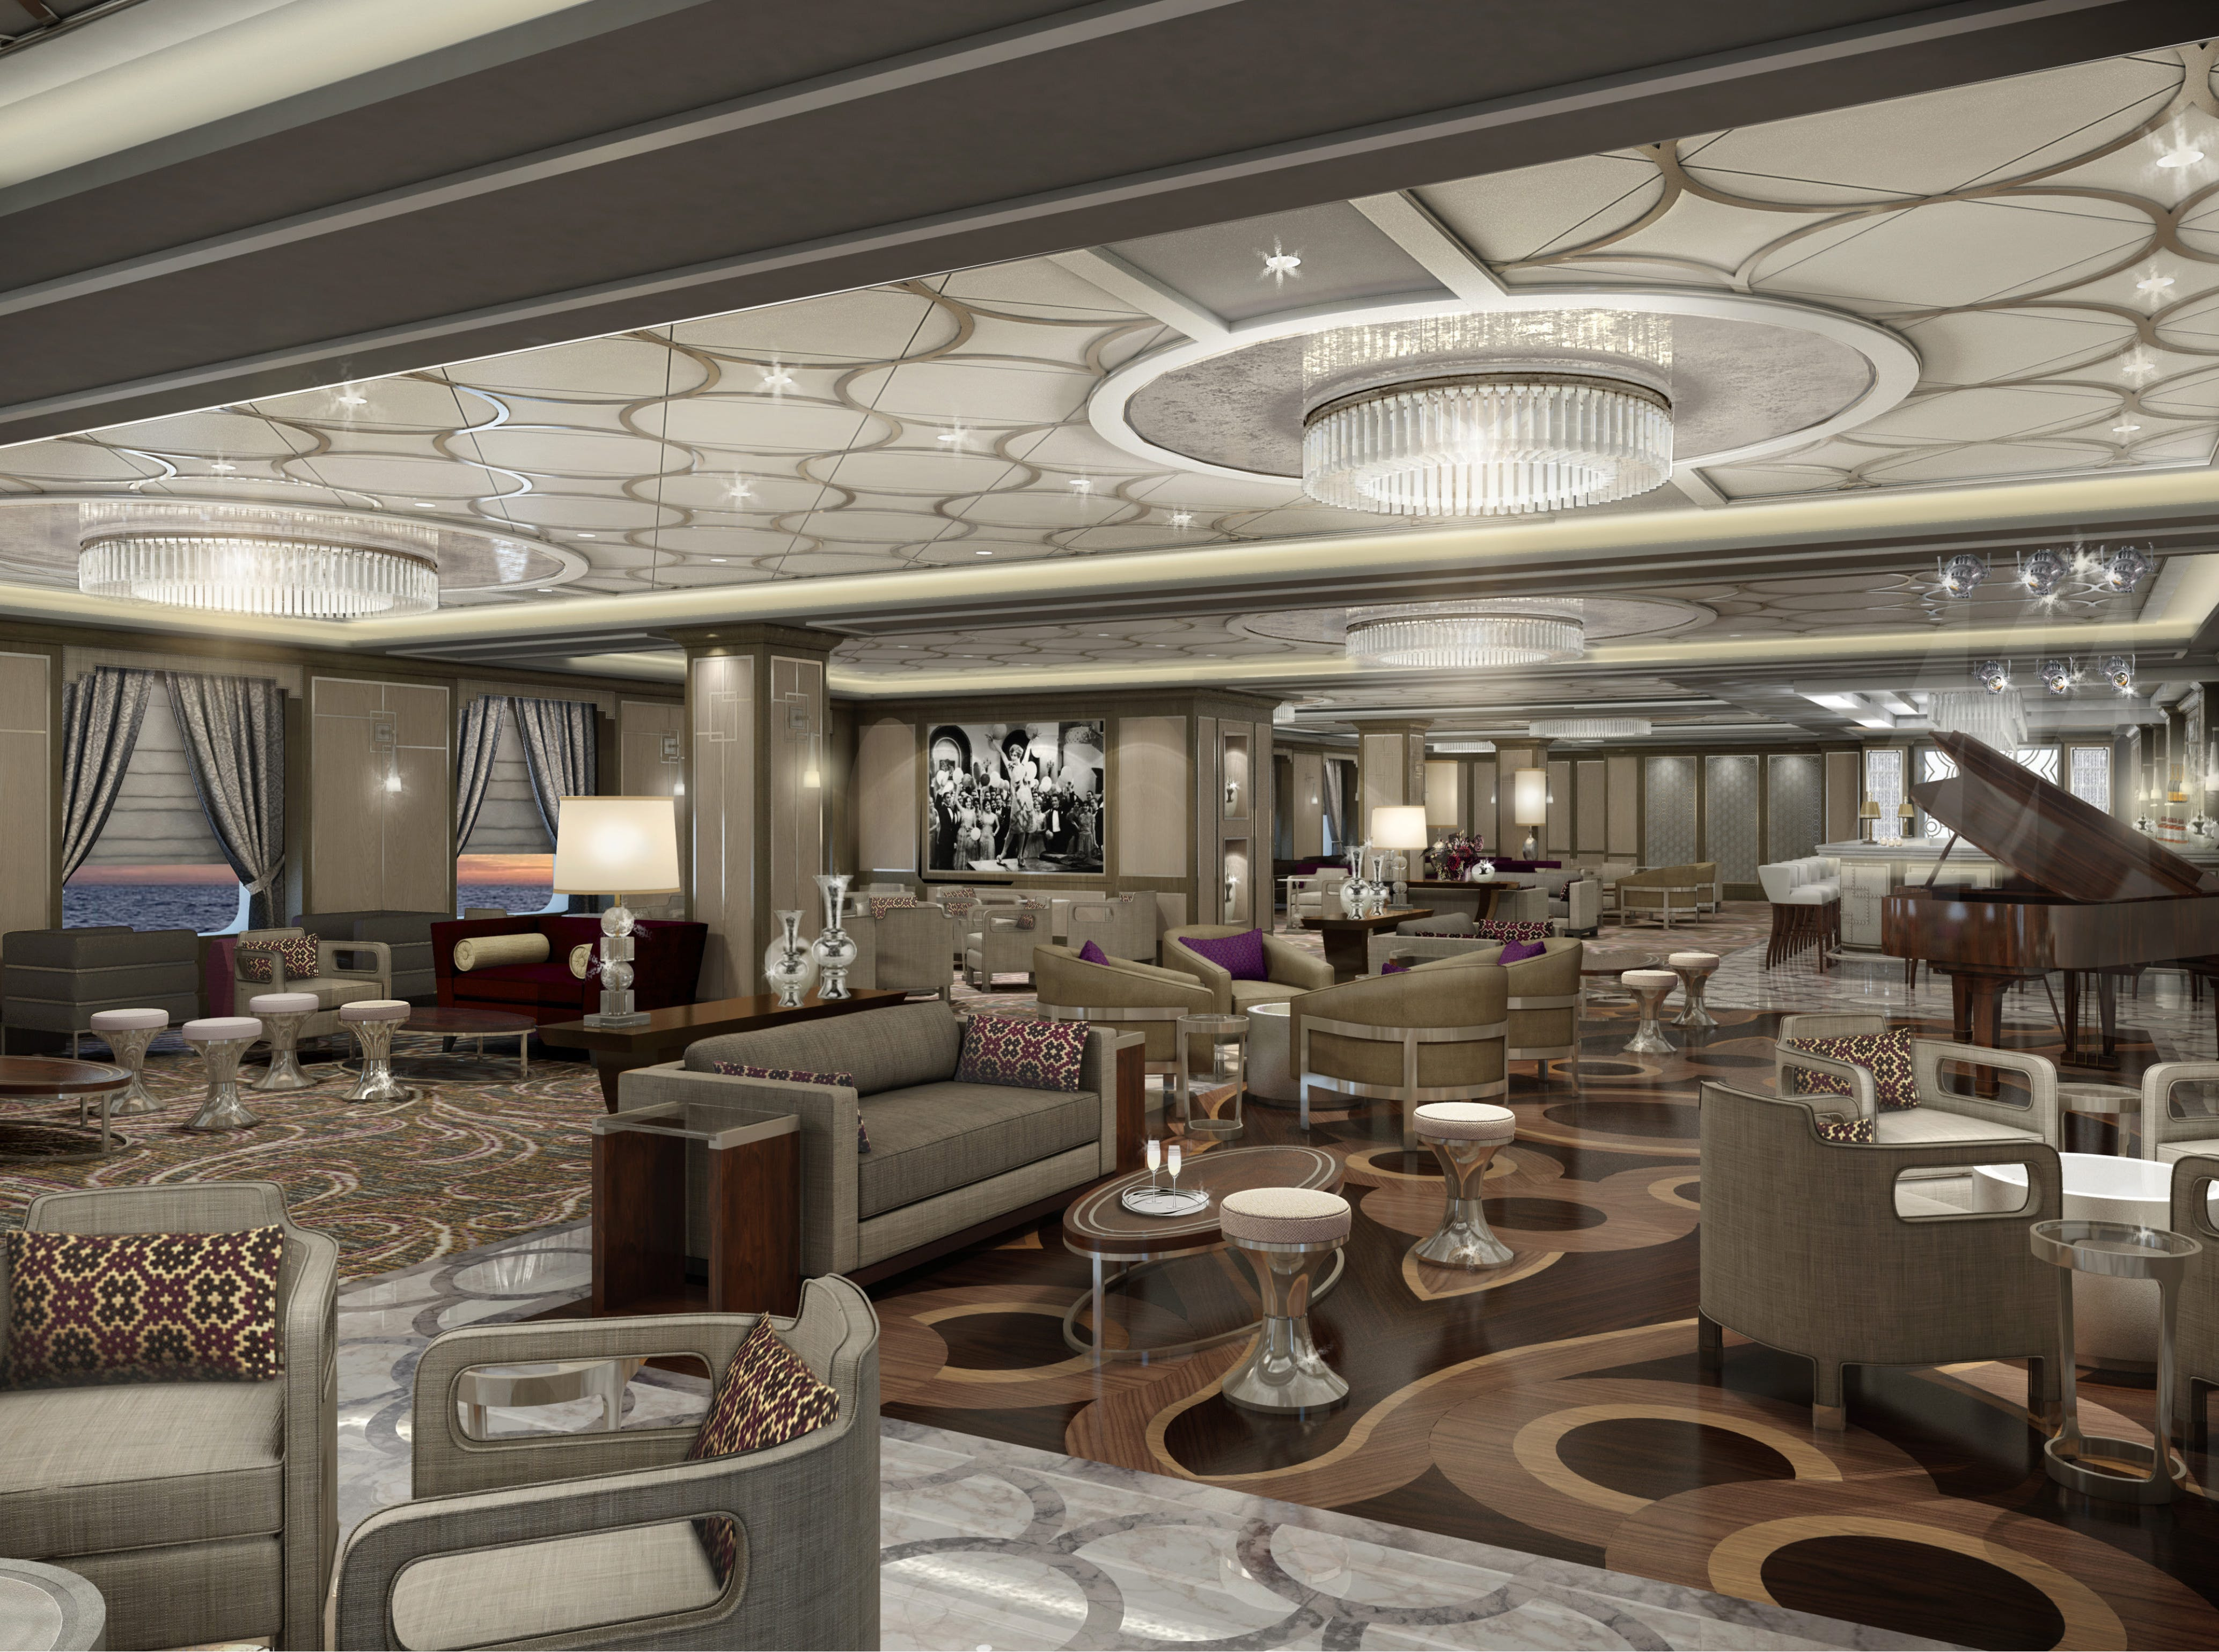 A new-for-Princess venue on Sky Princess will be Take Five, a jazz lounge that will feature live music from a pianist and a jazz band.